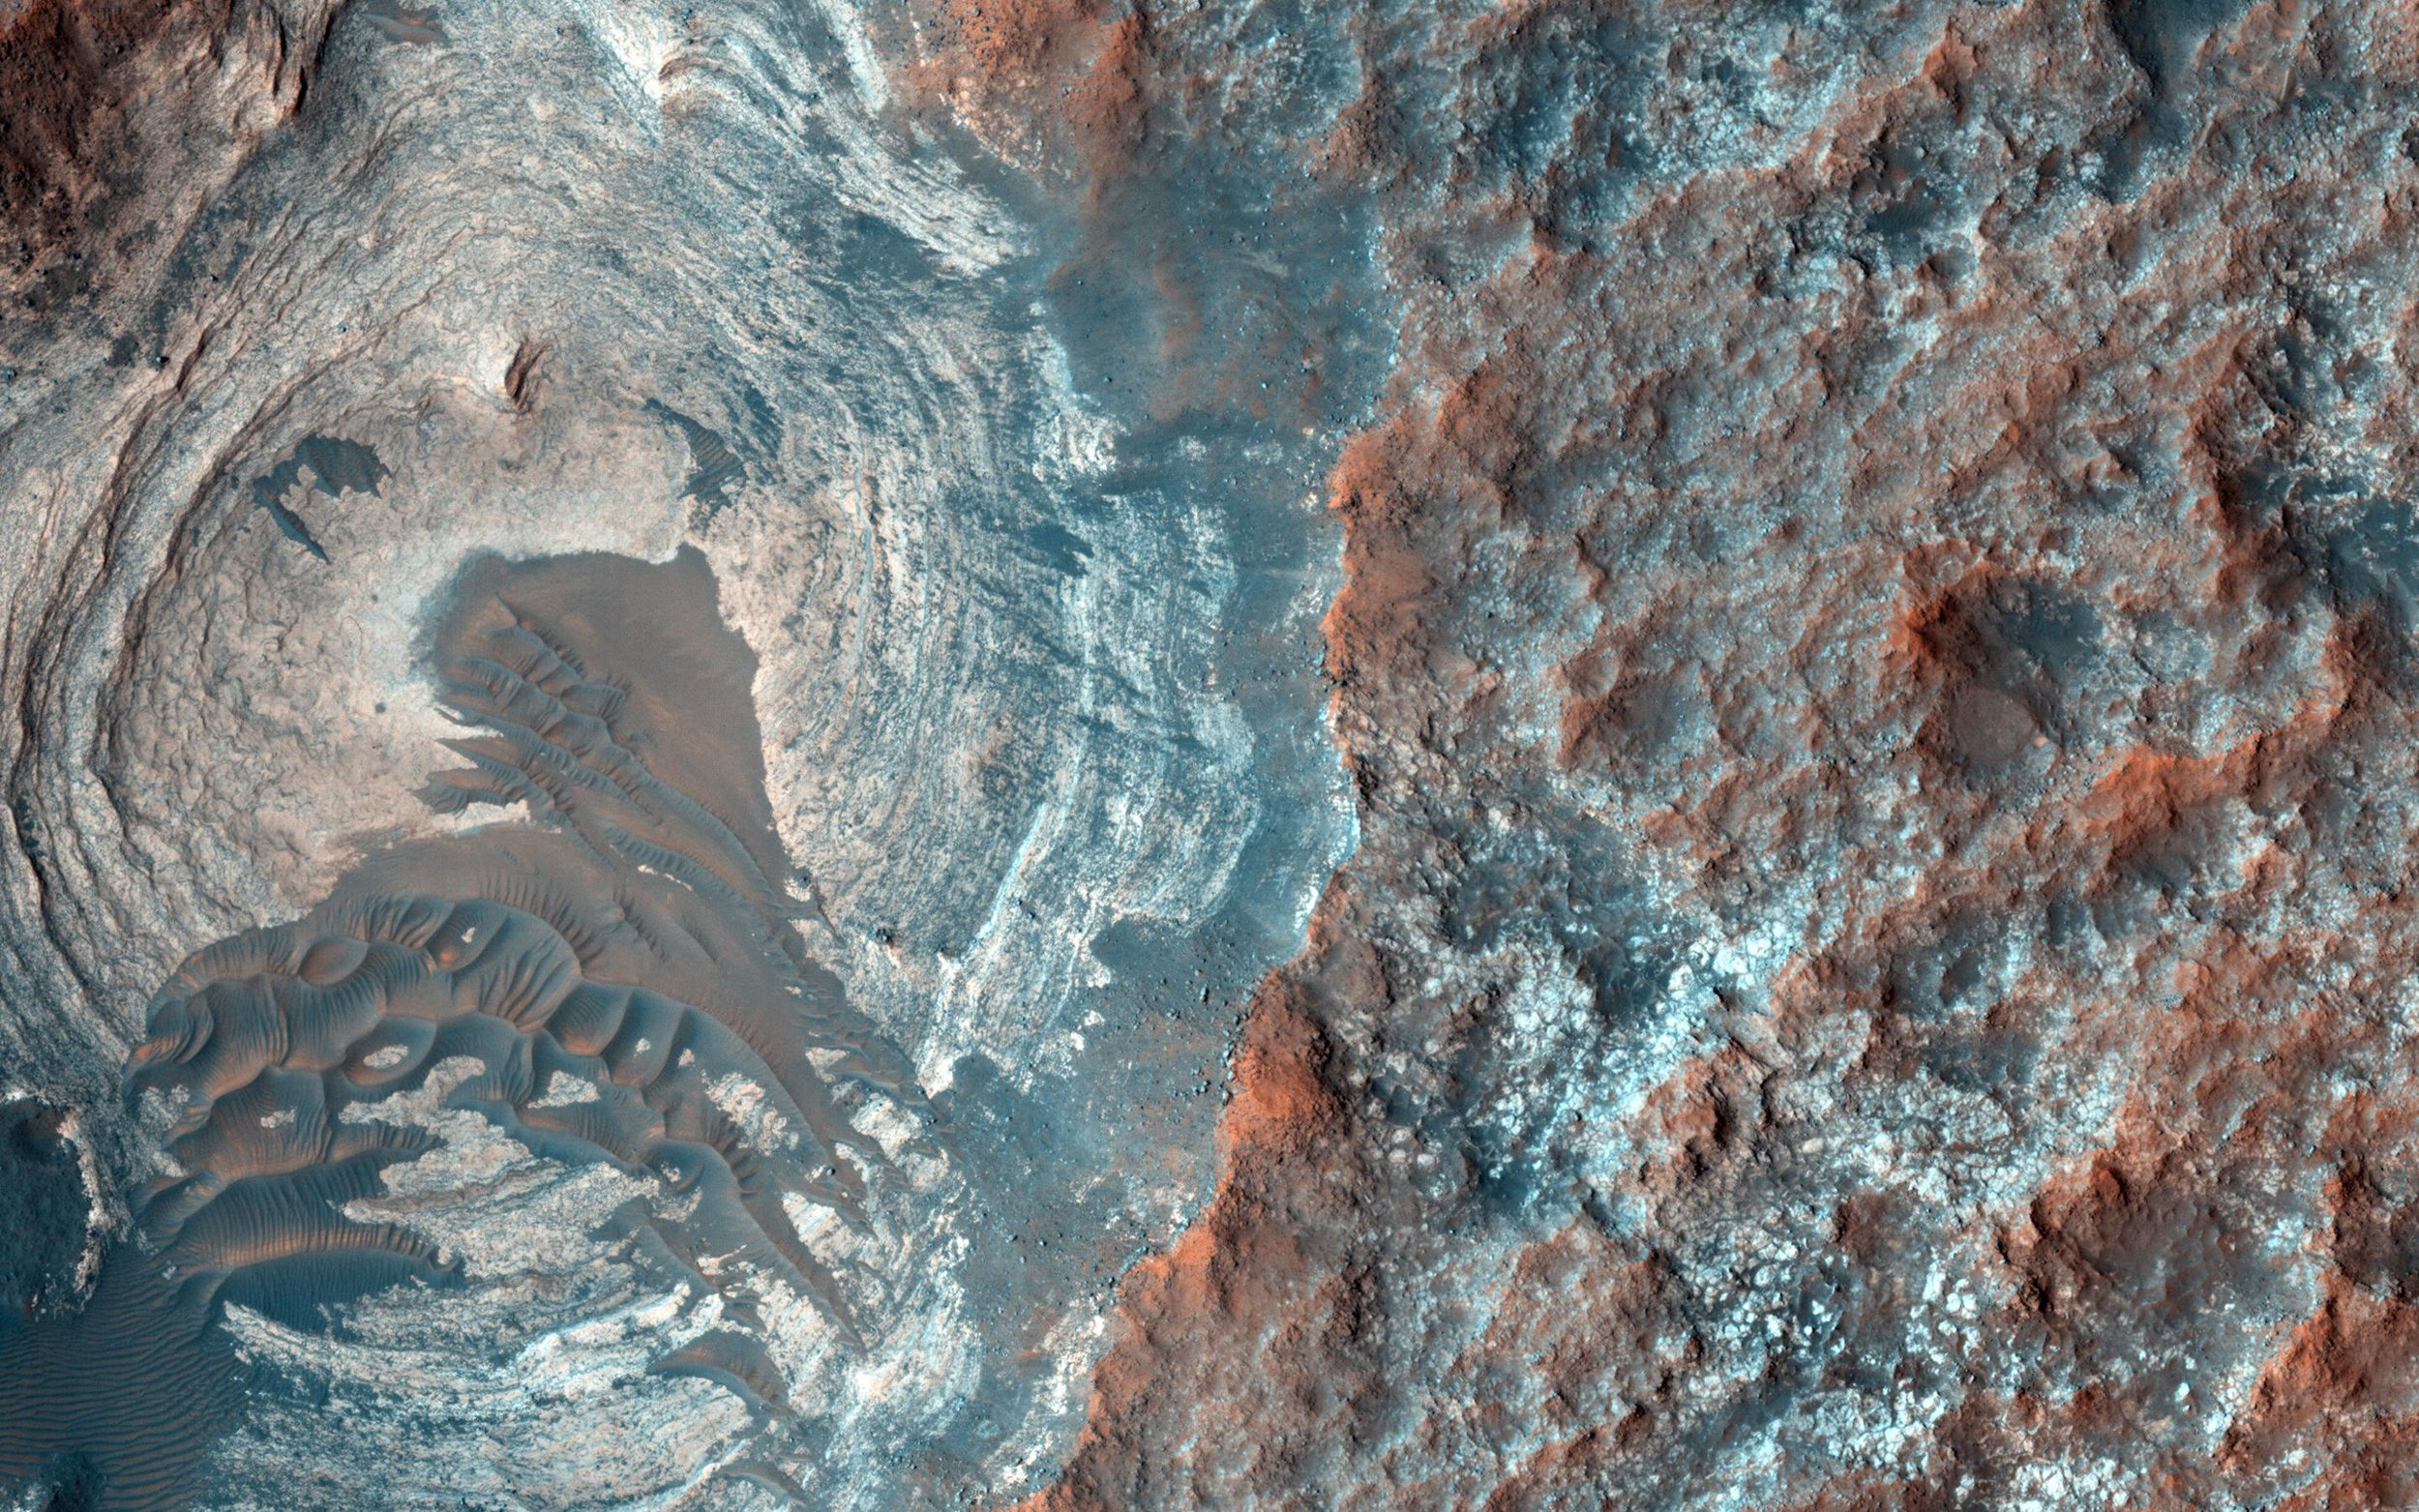 The Martian surface, from orbit, doesn't appear too dissimilar from Earth. Photo credit: NASA